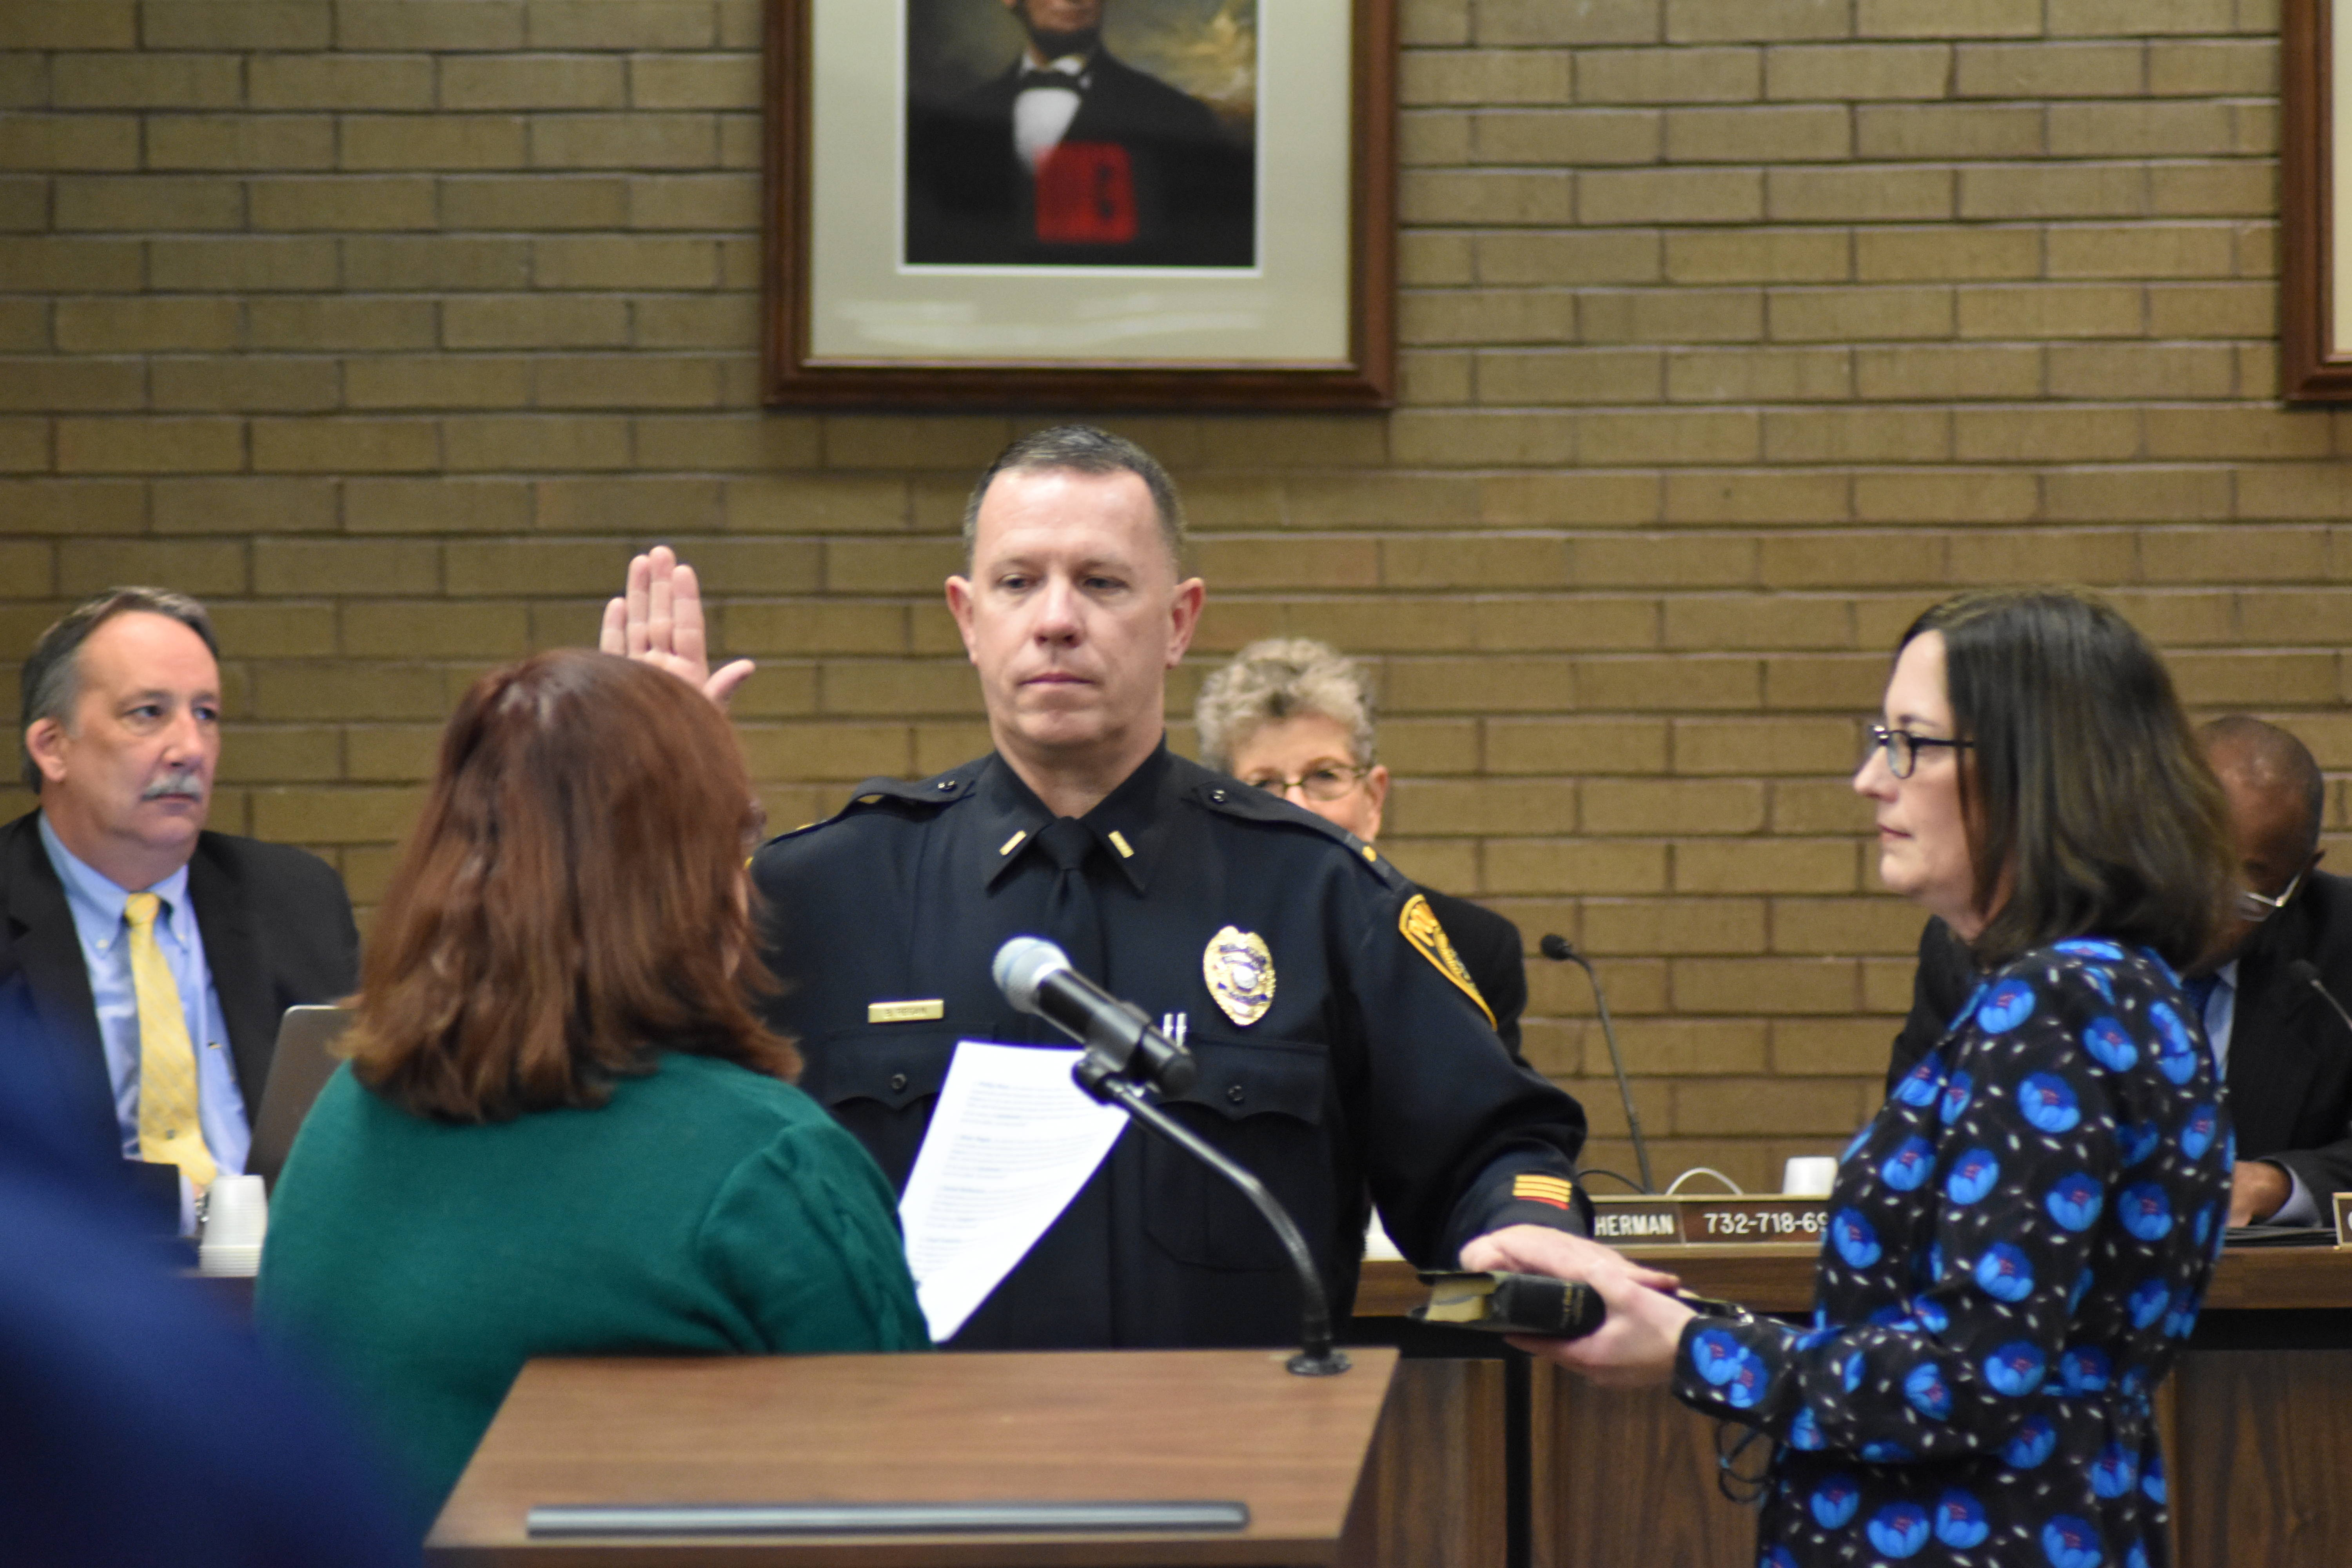 Franklin Township: Oaths of Office And Police Promotions At This ...